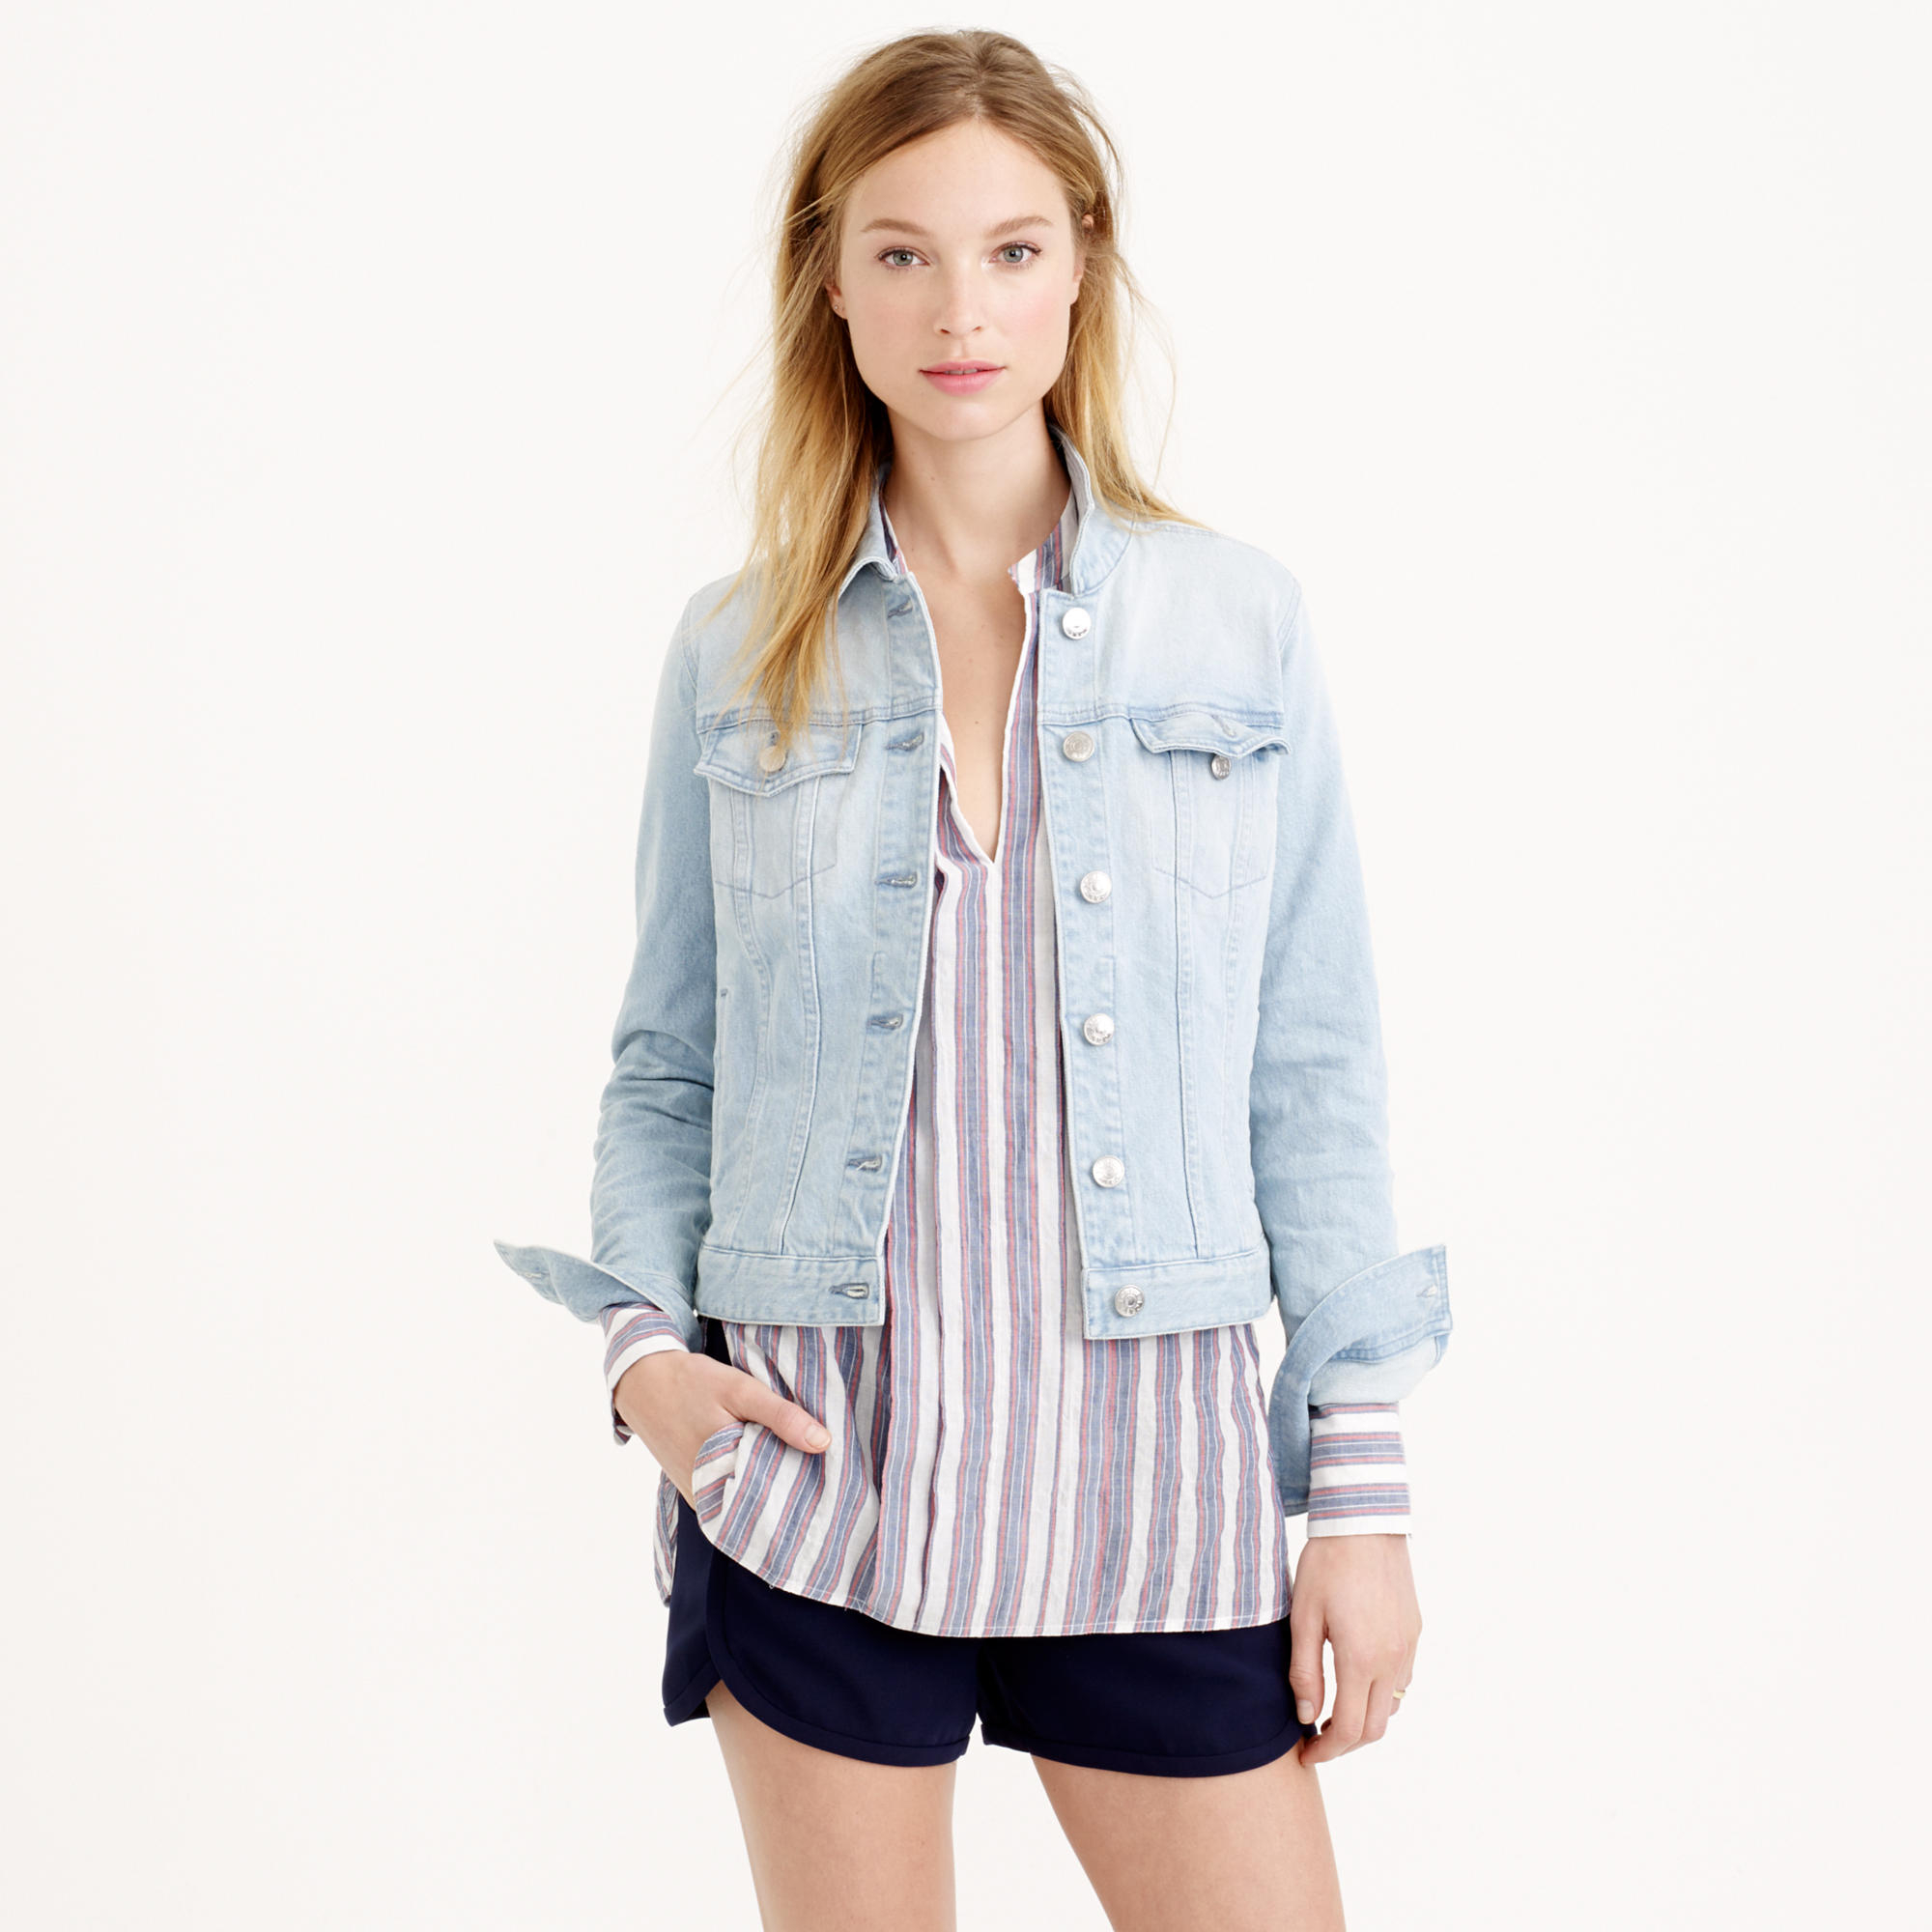 Lyst - Jcrew Stretch Denim Jacket In Pale Indigo Wash In Blue-7749